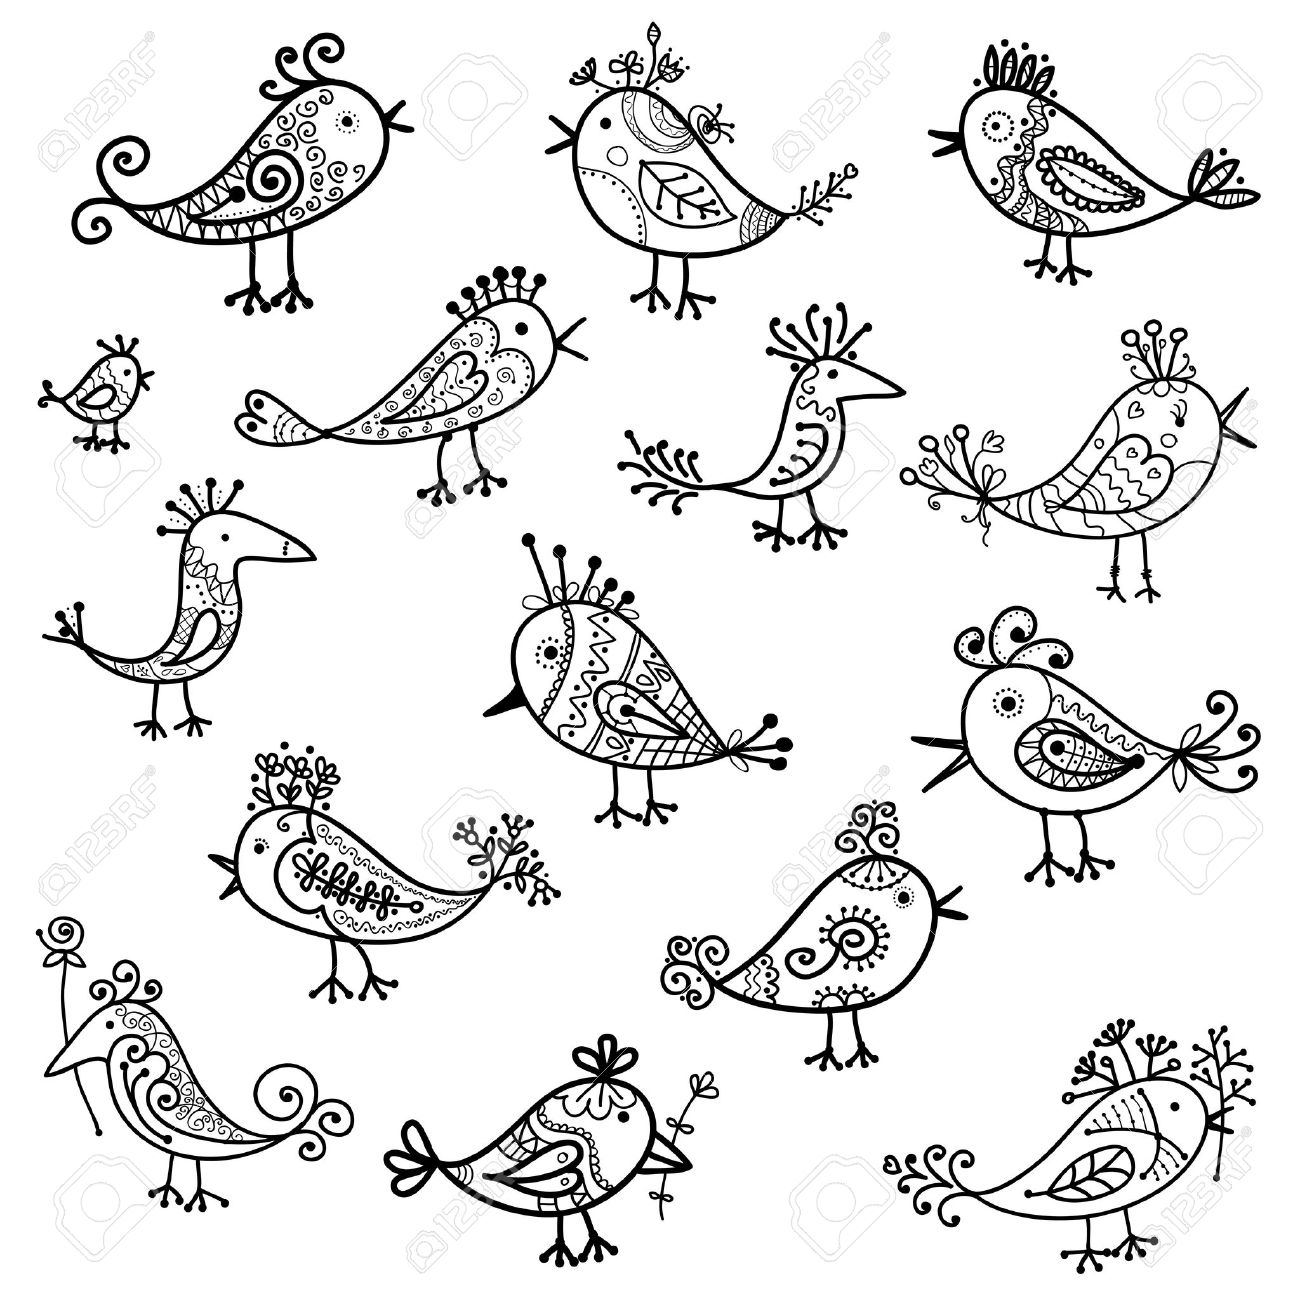 set of funny birds for your design royalty free cliparts vectors